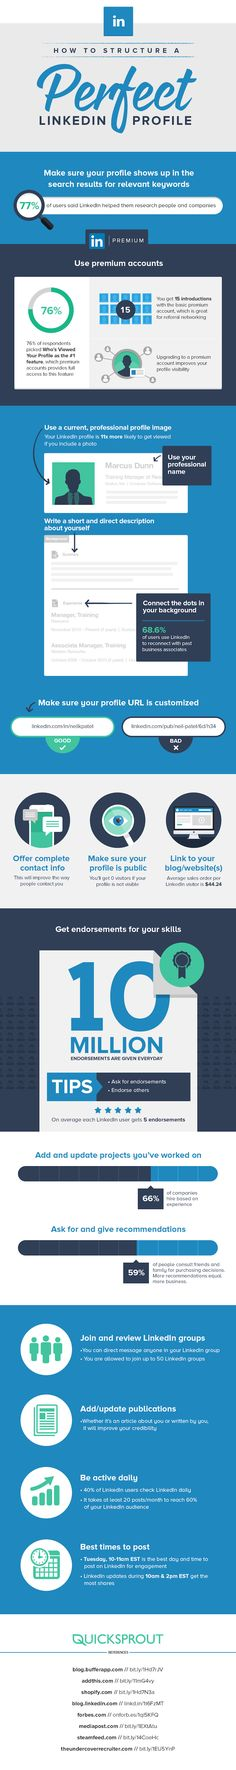 How to Create an Awesome #LinkedIn Profile? #INFOGRAPHIC